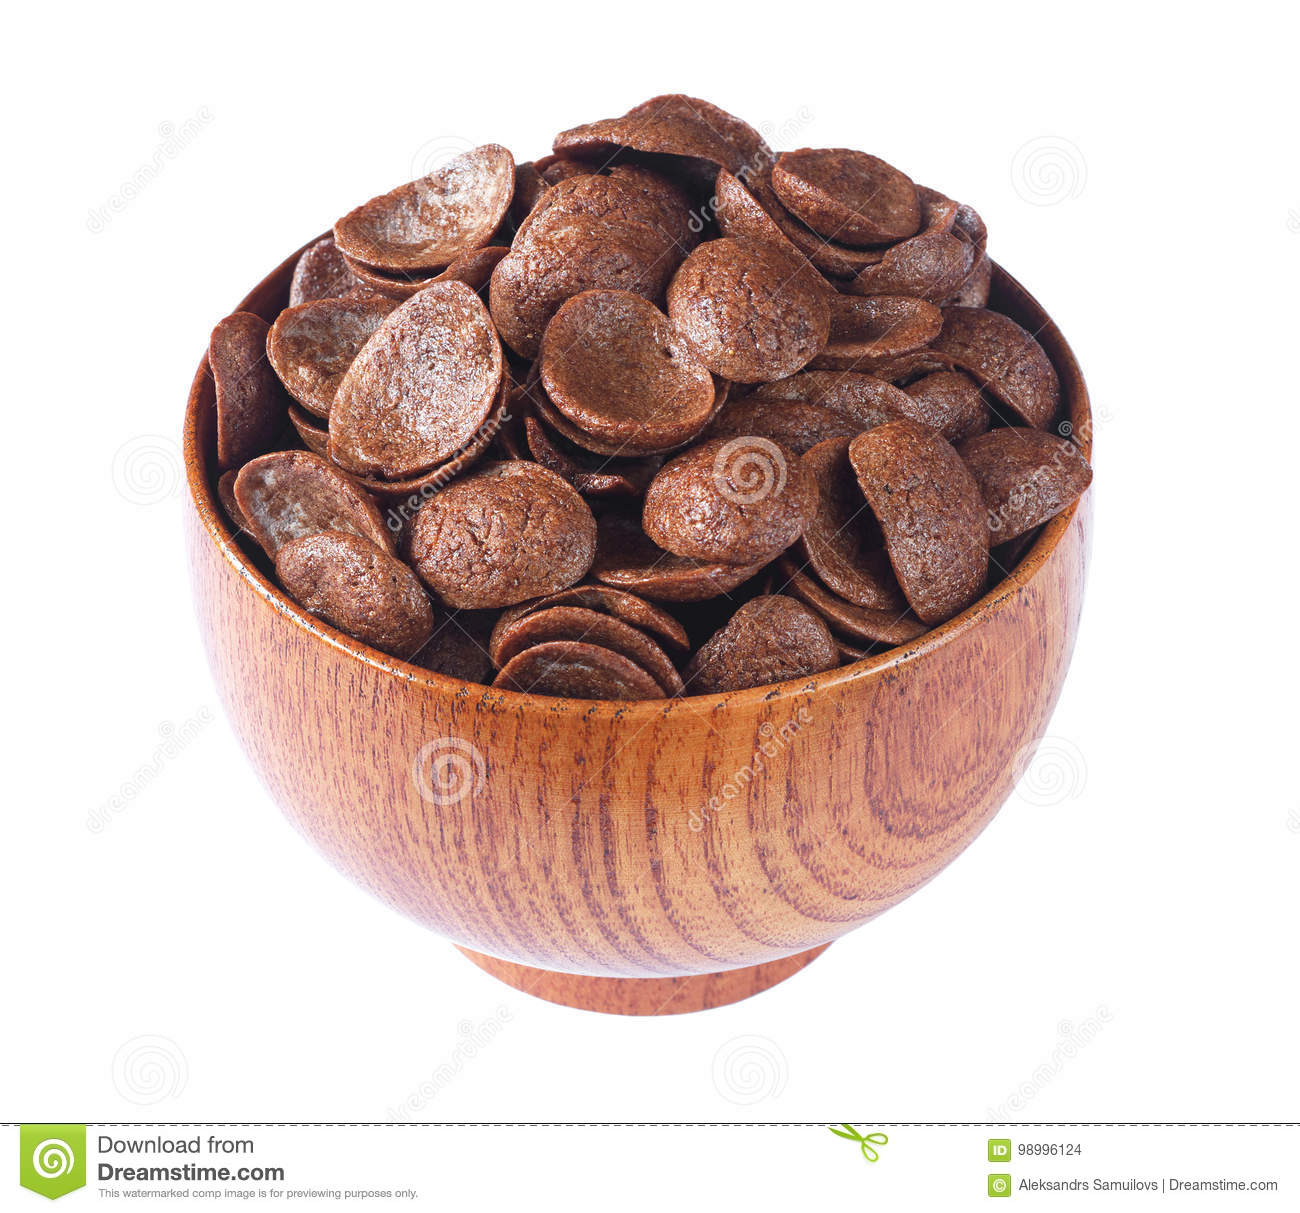 Chocolate Cereals In Bowl Stock Photo. Image Of Brown